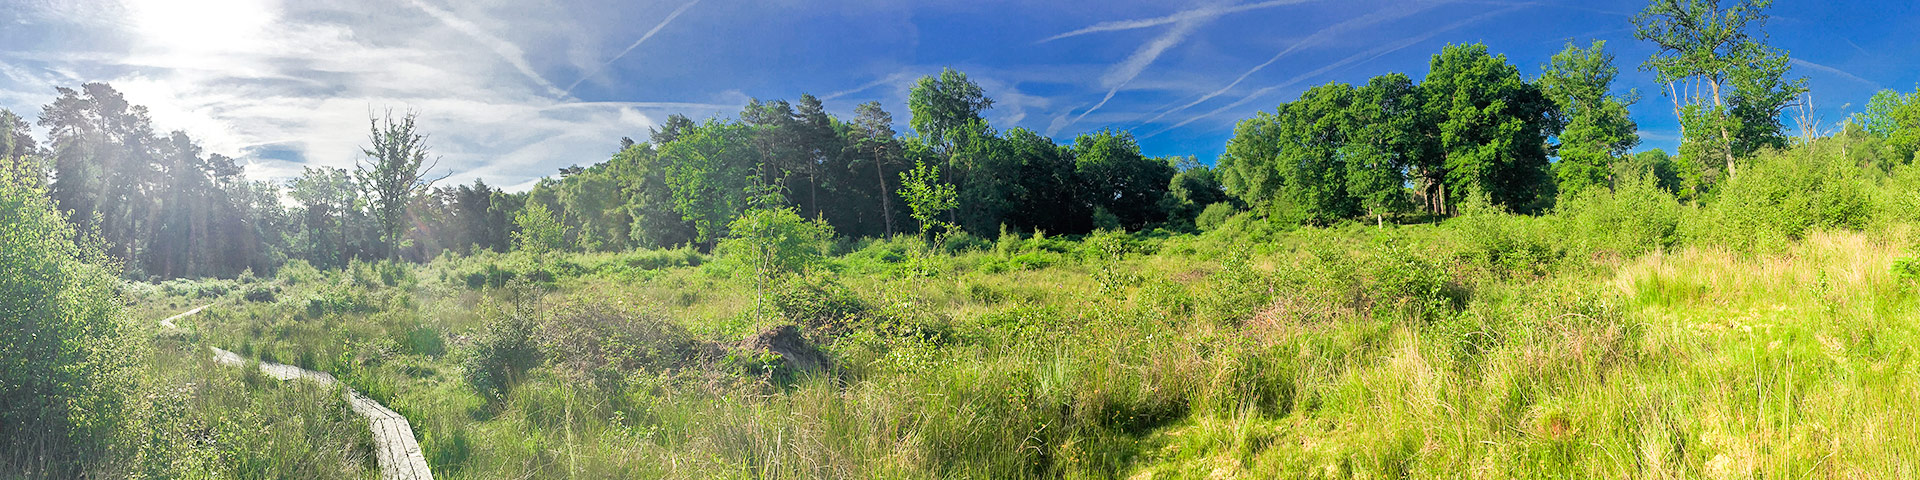 Panorama from the Burnham Beeches Loop hike in Chiltern Hills, England